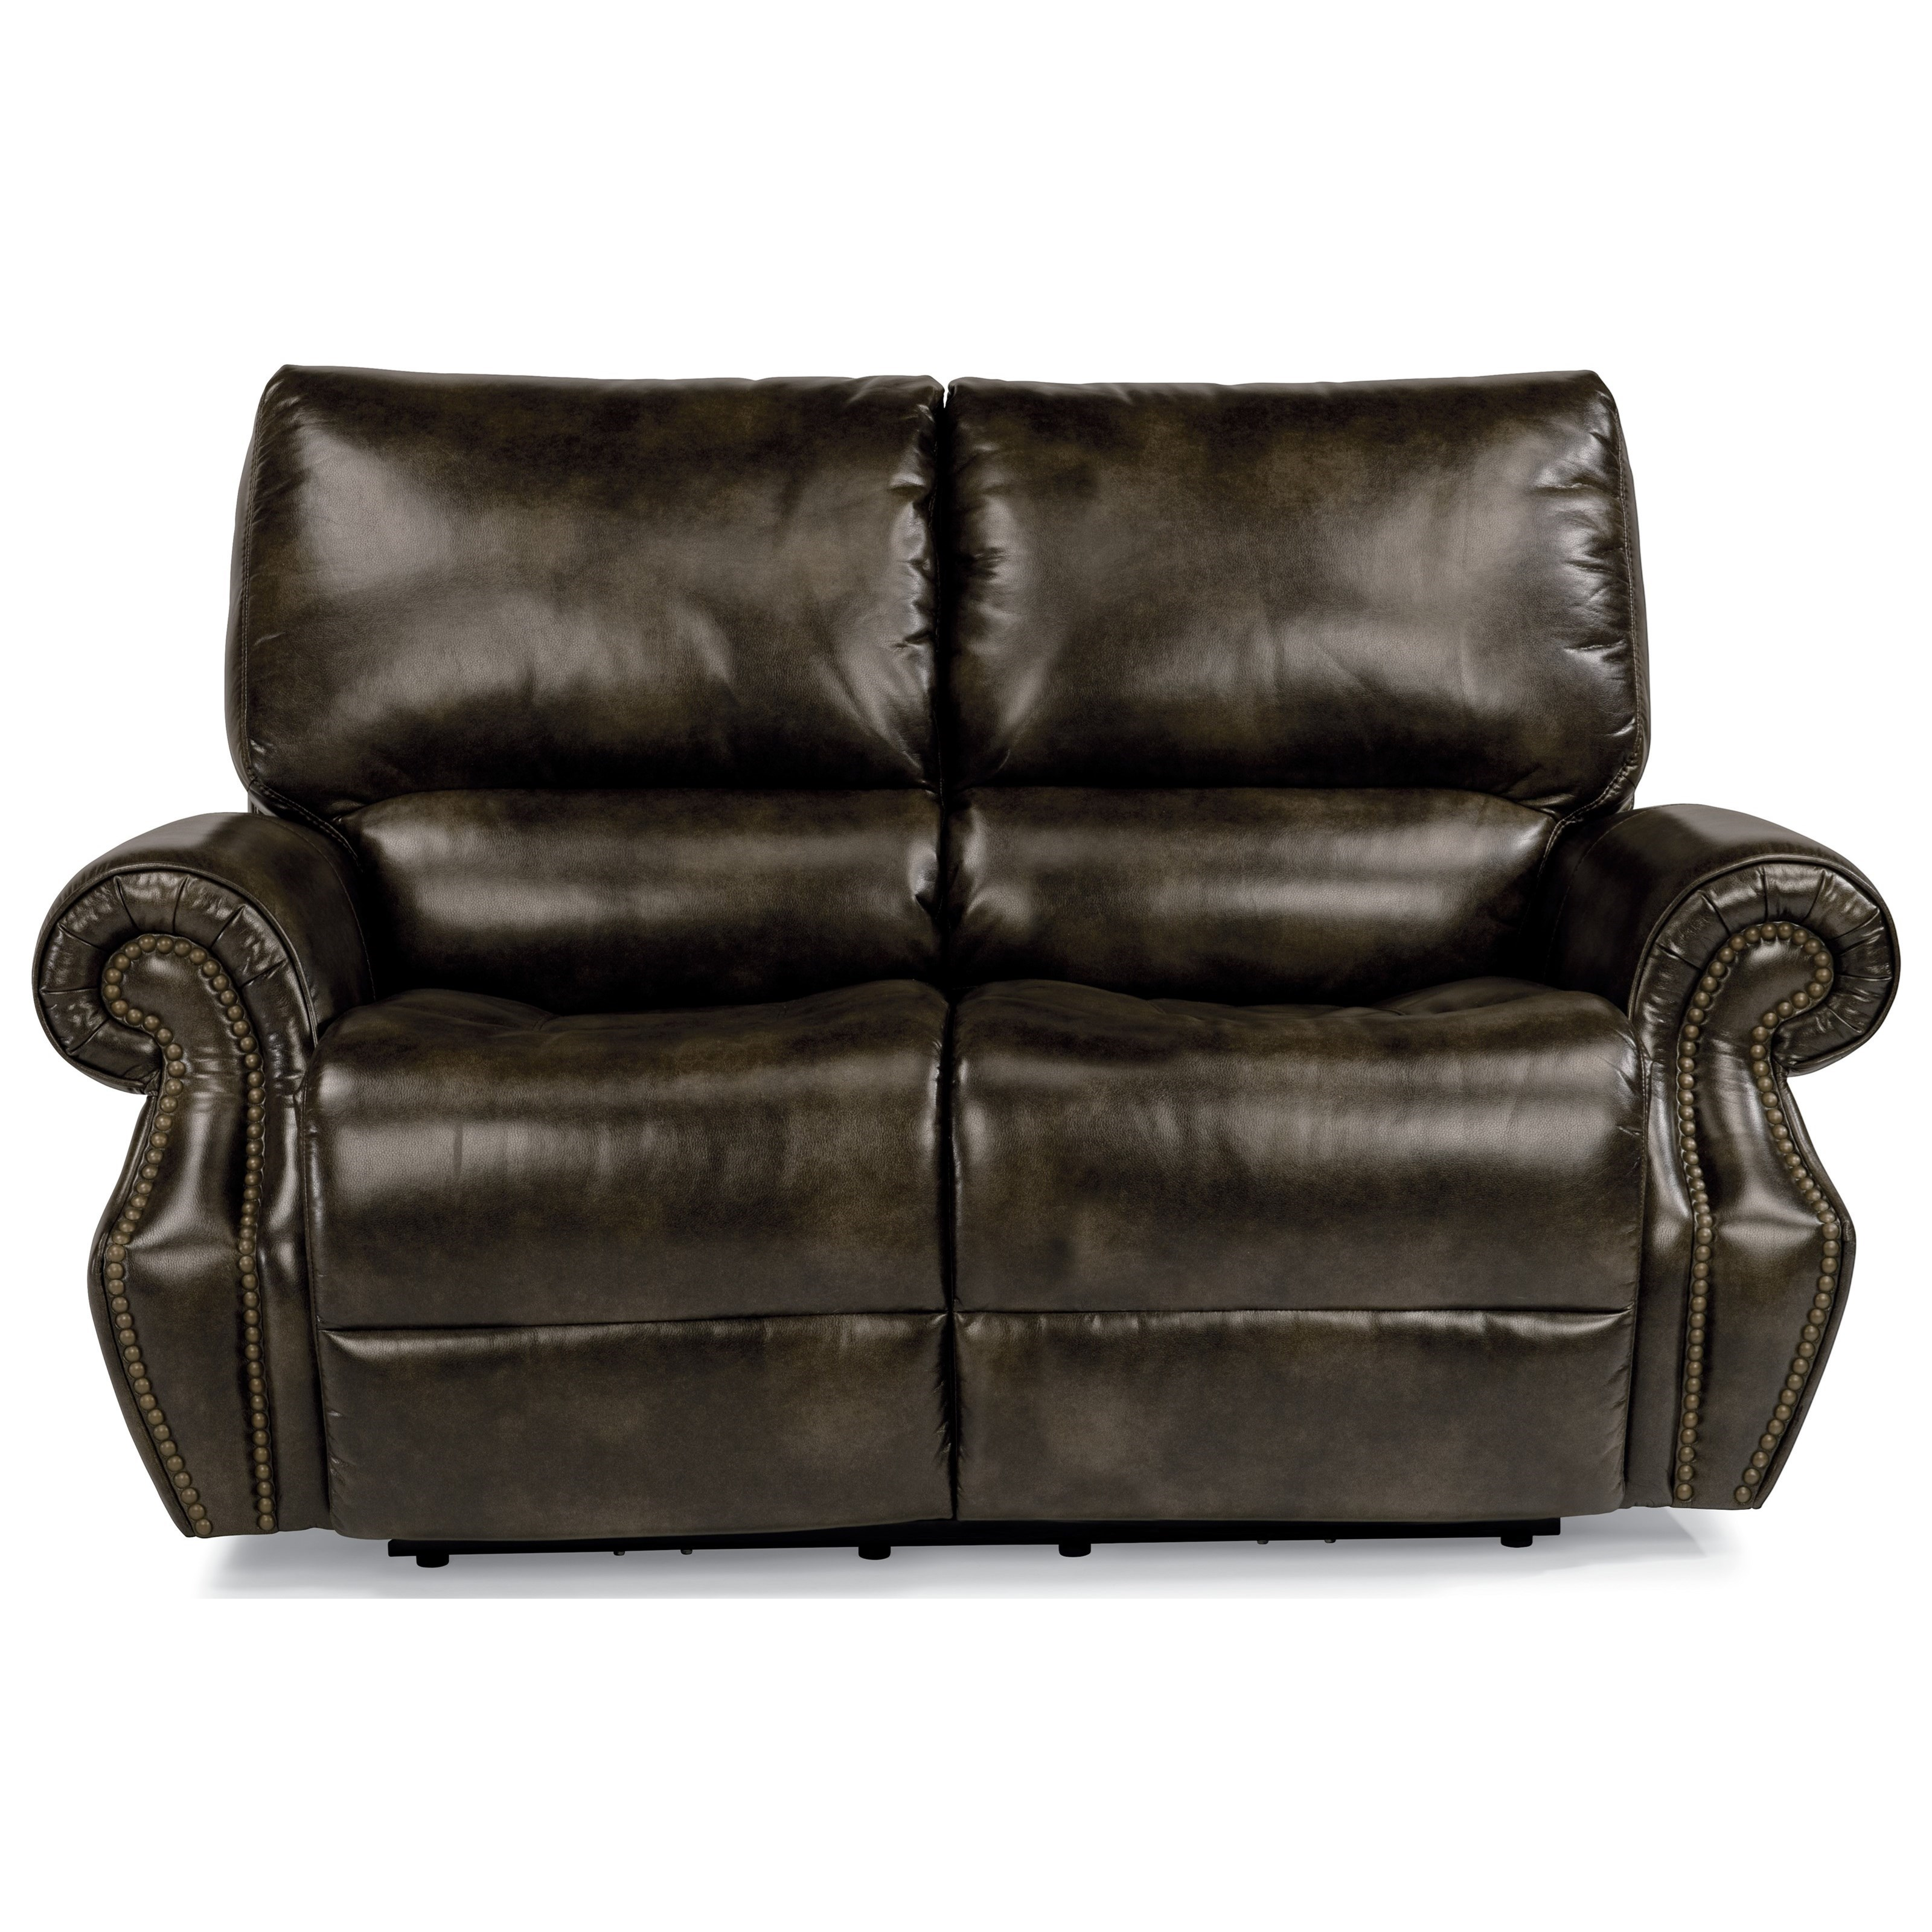 Flexsteel Latitudes-Colton Pwr Rcl Loveseat w/ Pwr Headrest - Item Number: 1582-60PH